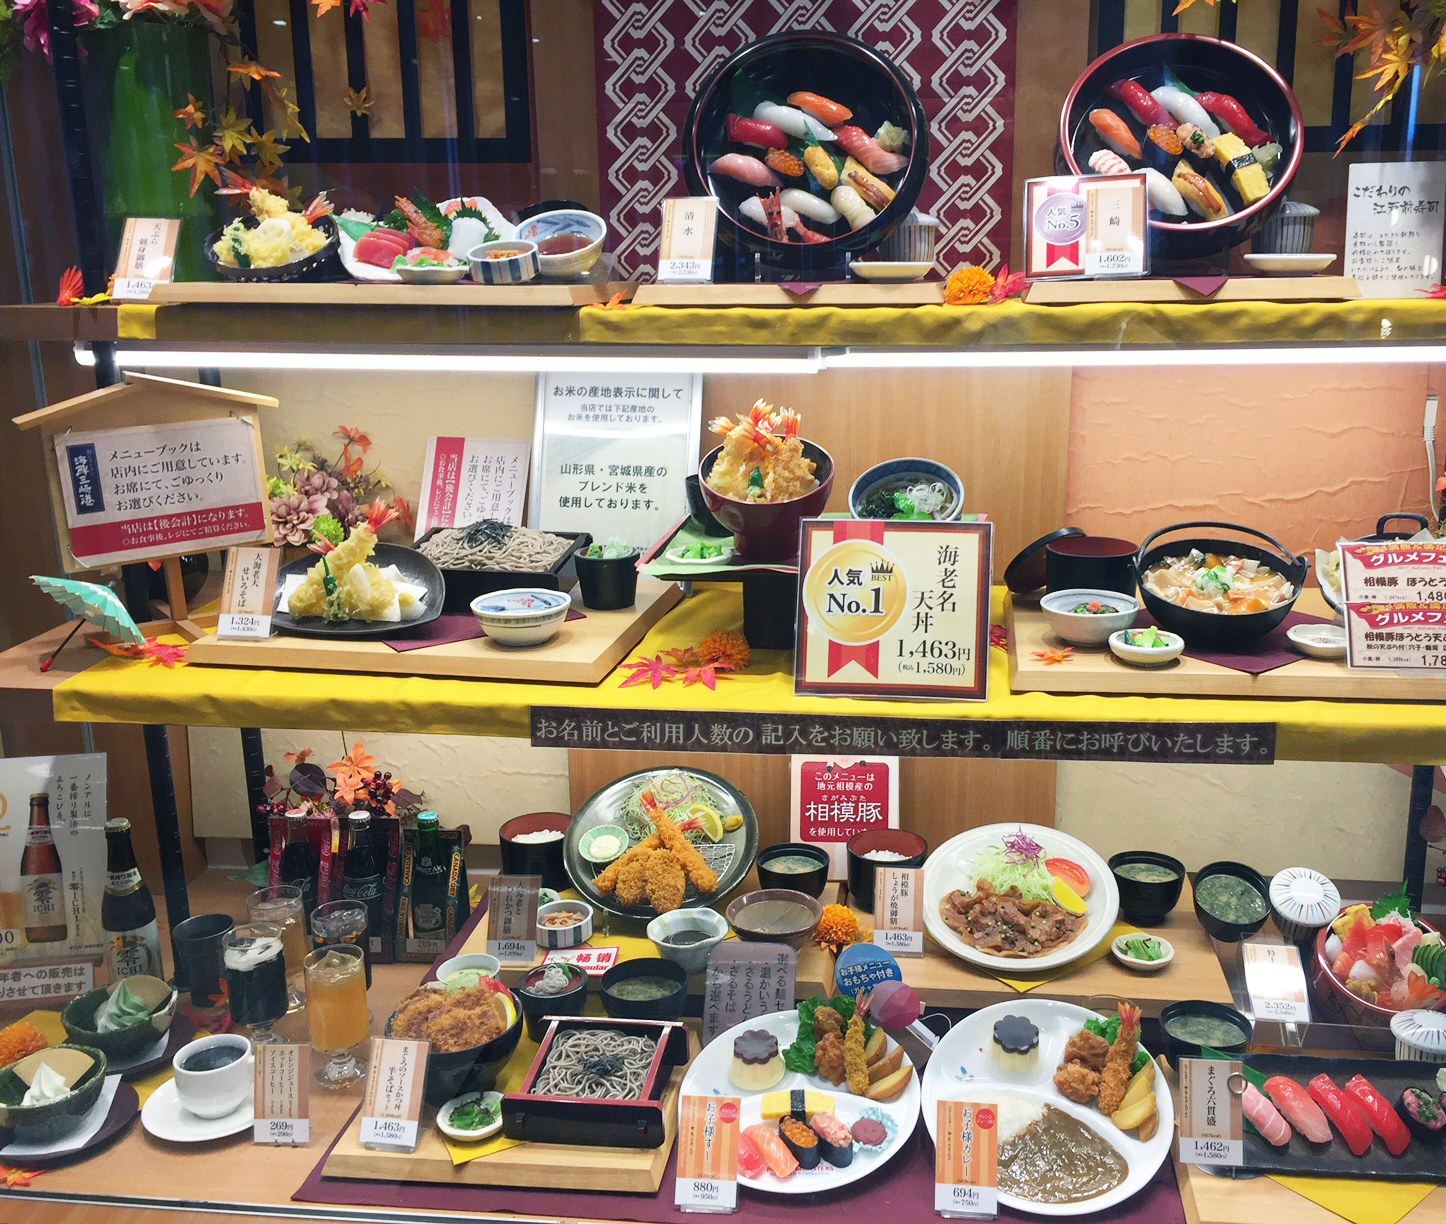 Things You Should Know Before Eating In Japan